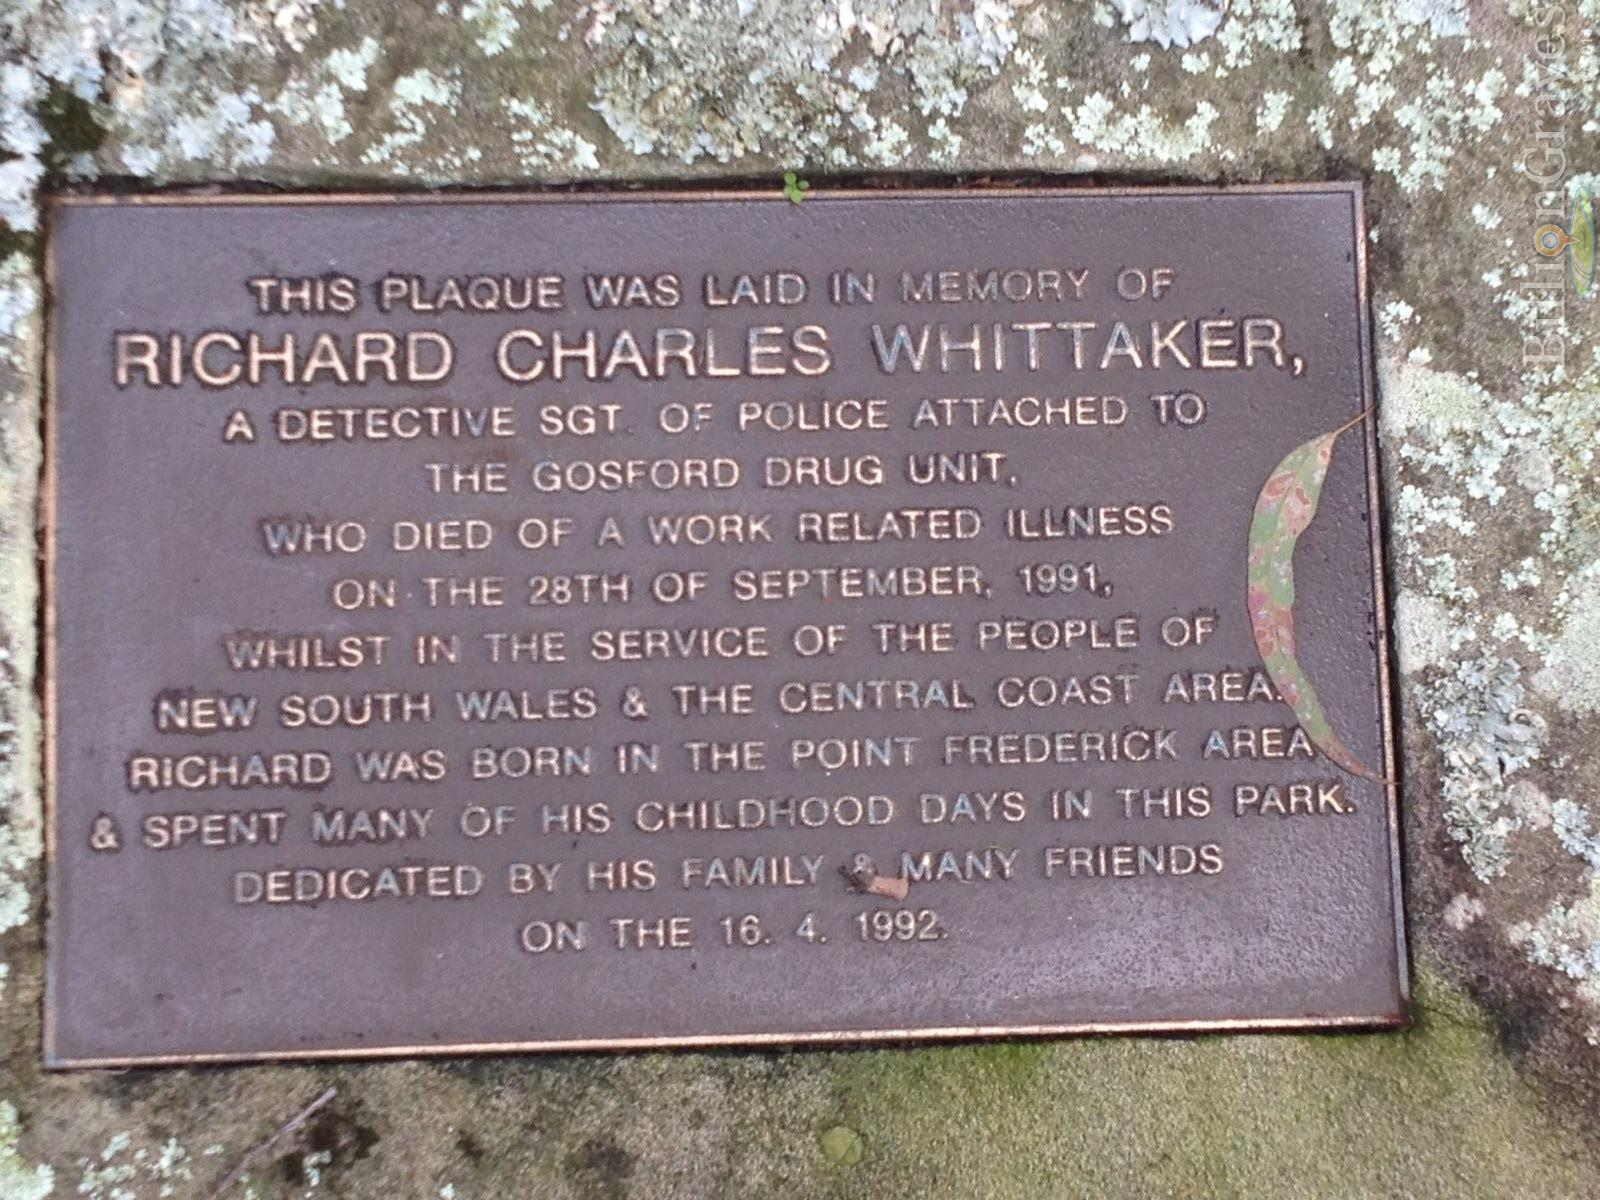 Grave plate: This plaque was laid in memory of RICHARD CHARLES WHITTAKER, a Detective Sgt of Police attached to the Gosford Drug Unit, who died of a work related illness on the 28th of September, 1991, whilst in the service of the people of New South Wales & the Central Coast area. Richard was born in the Point Frederick area and spent many of his childhood days in this park. Dedicated by his family & many friends on the 16. 4. 1992.